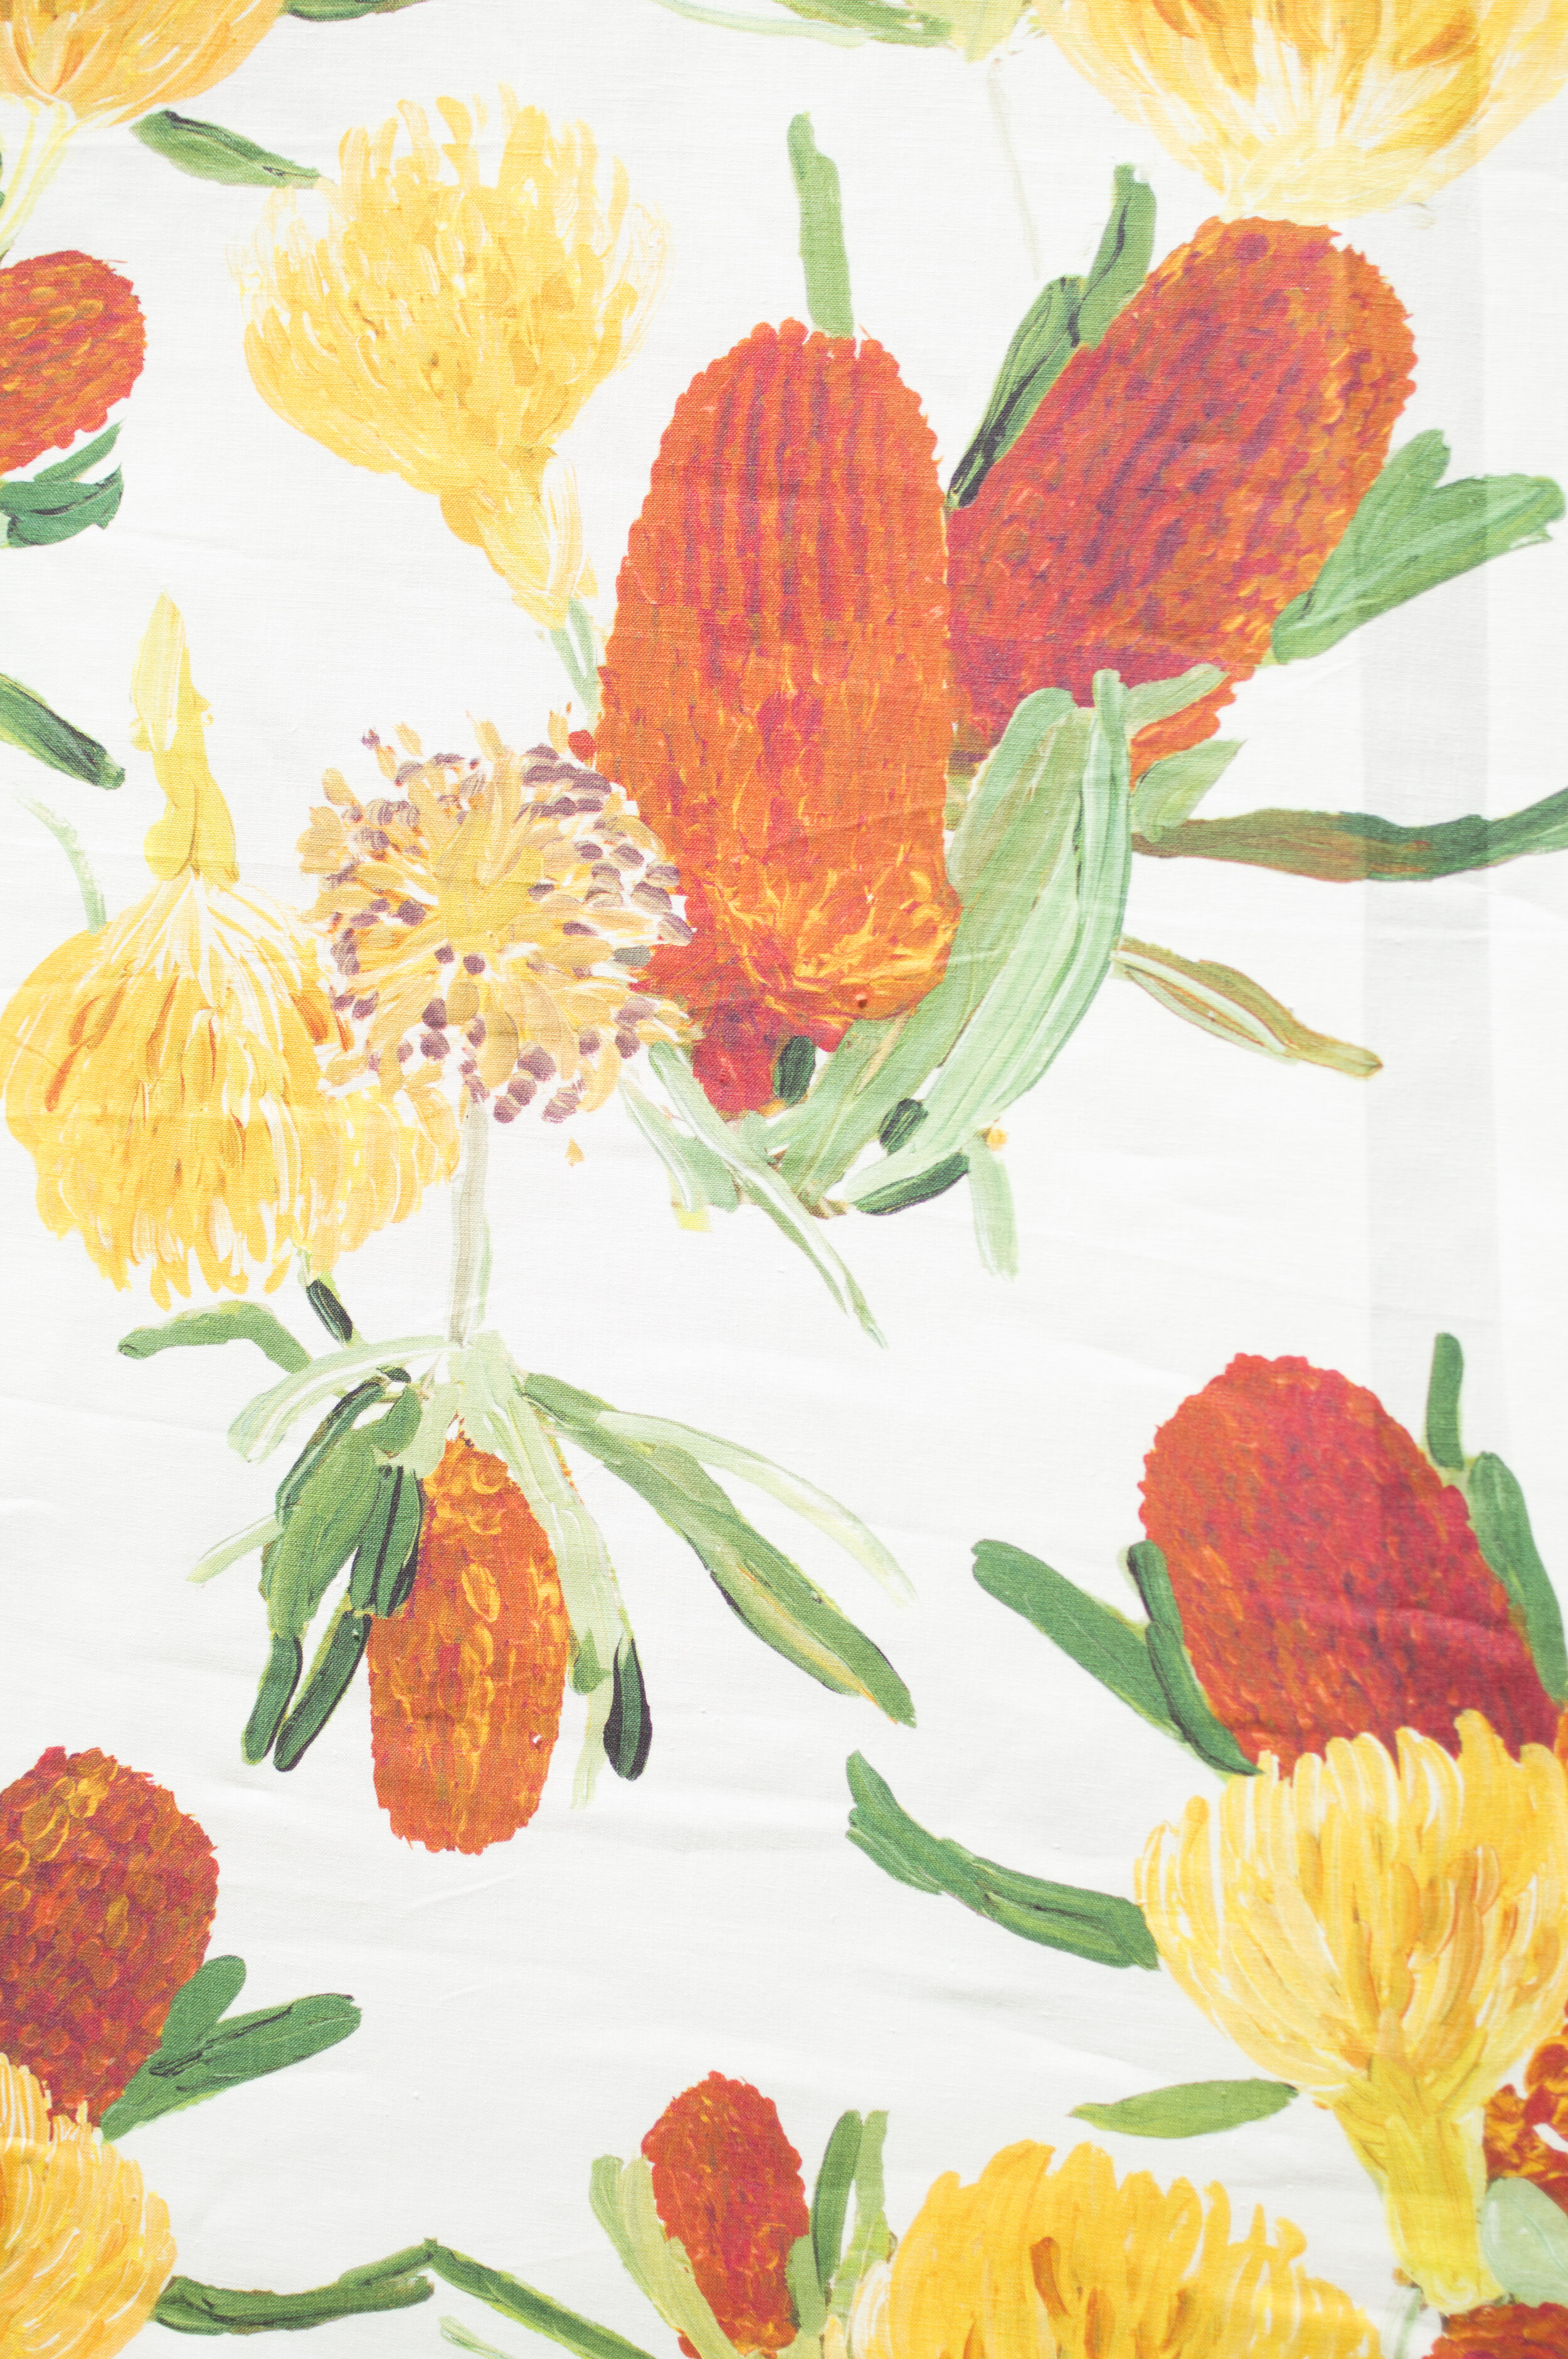 Foliage | SUGARBUSH  A burnt orange and bright yellow palette for this unusual floral. Proteas make for fun shapes and a dynamic composition, which is why we love this bold print of uncommon flowers.